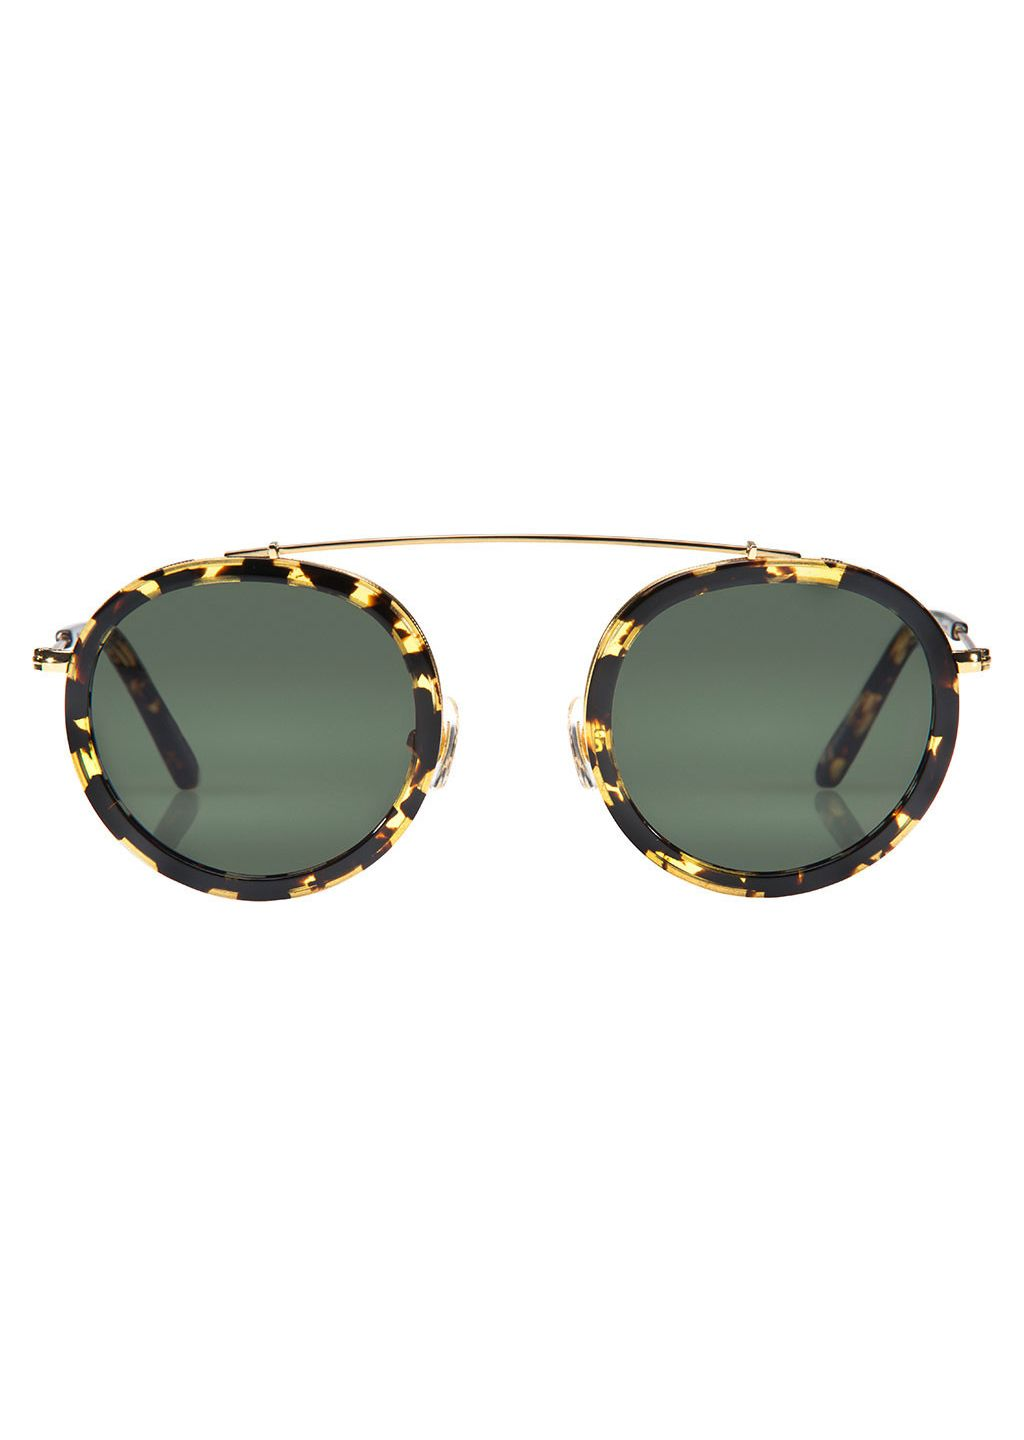 CONTI | Zulu 24K // 2016 sunglasses for oval face shapes